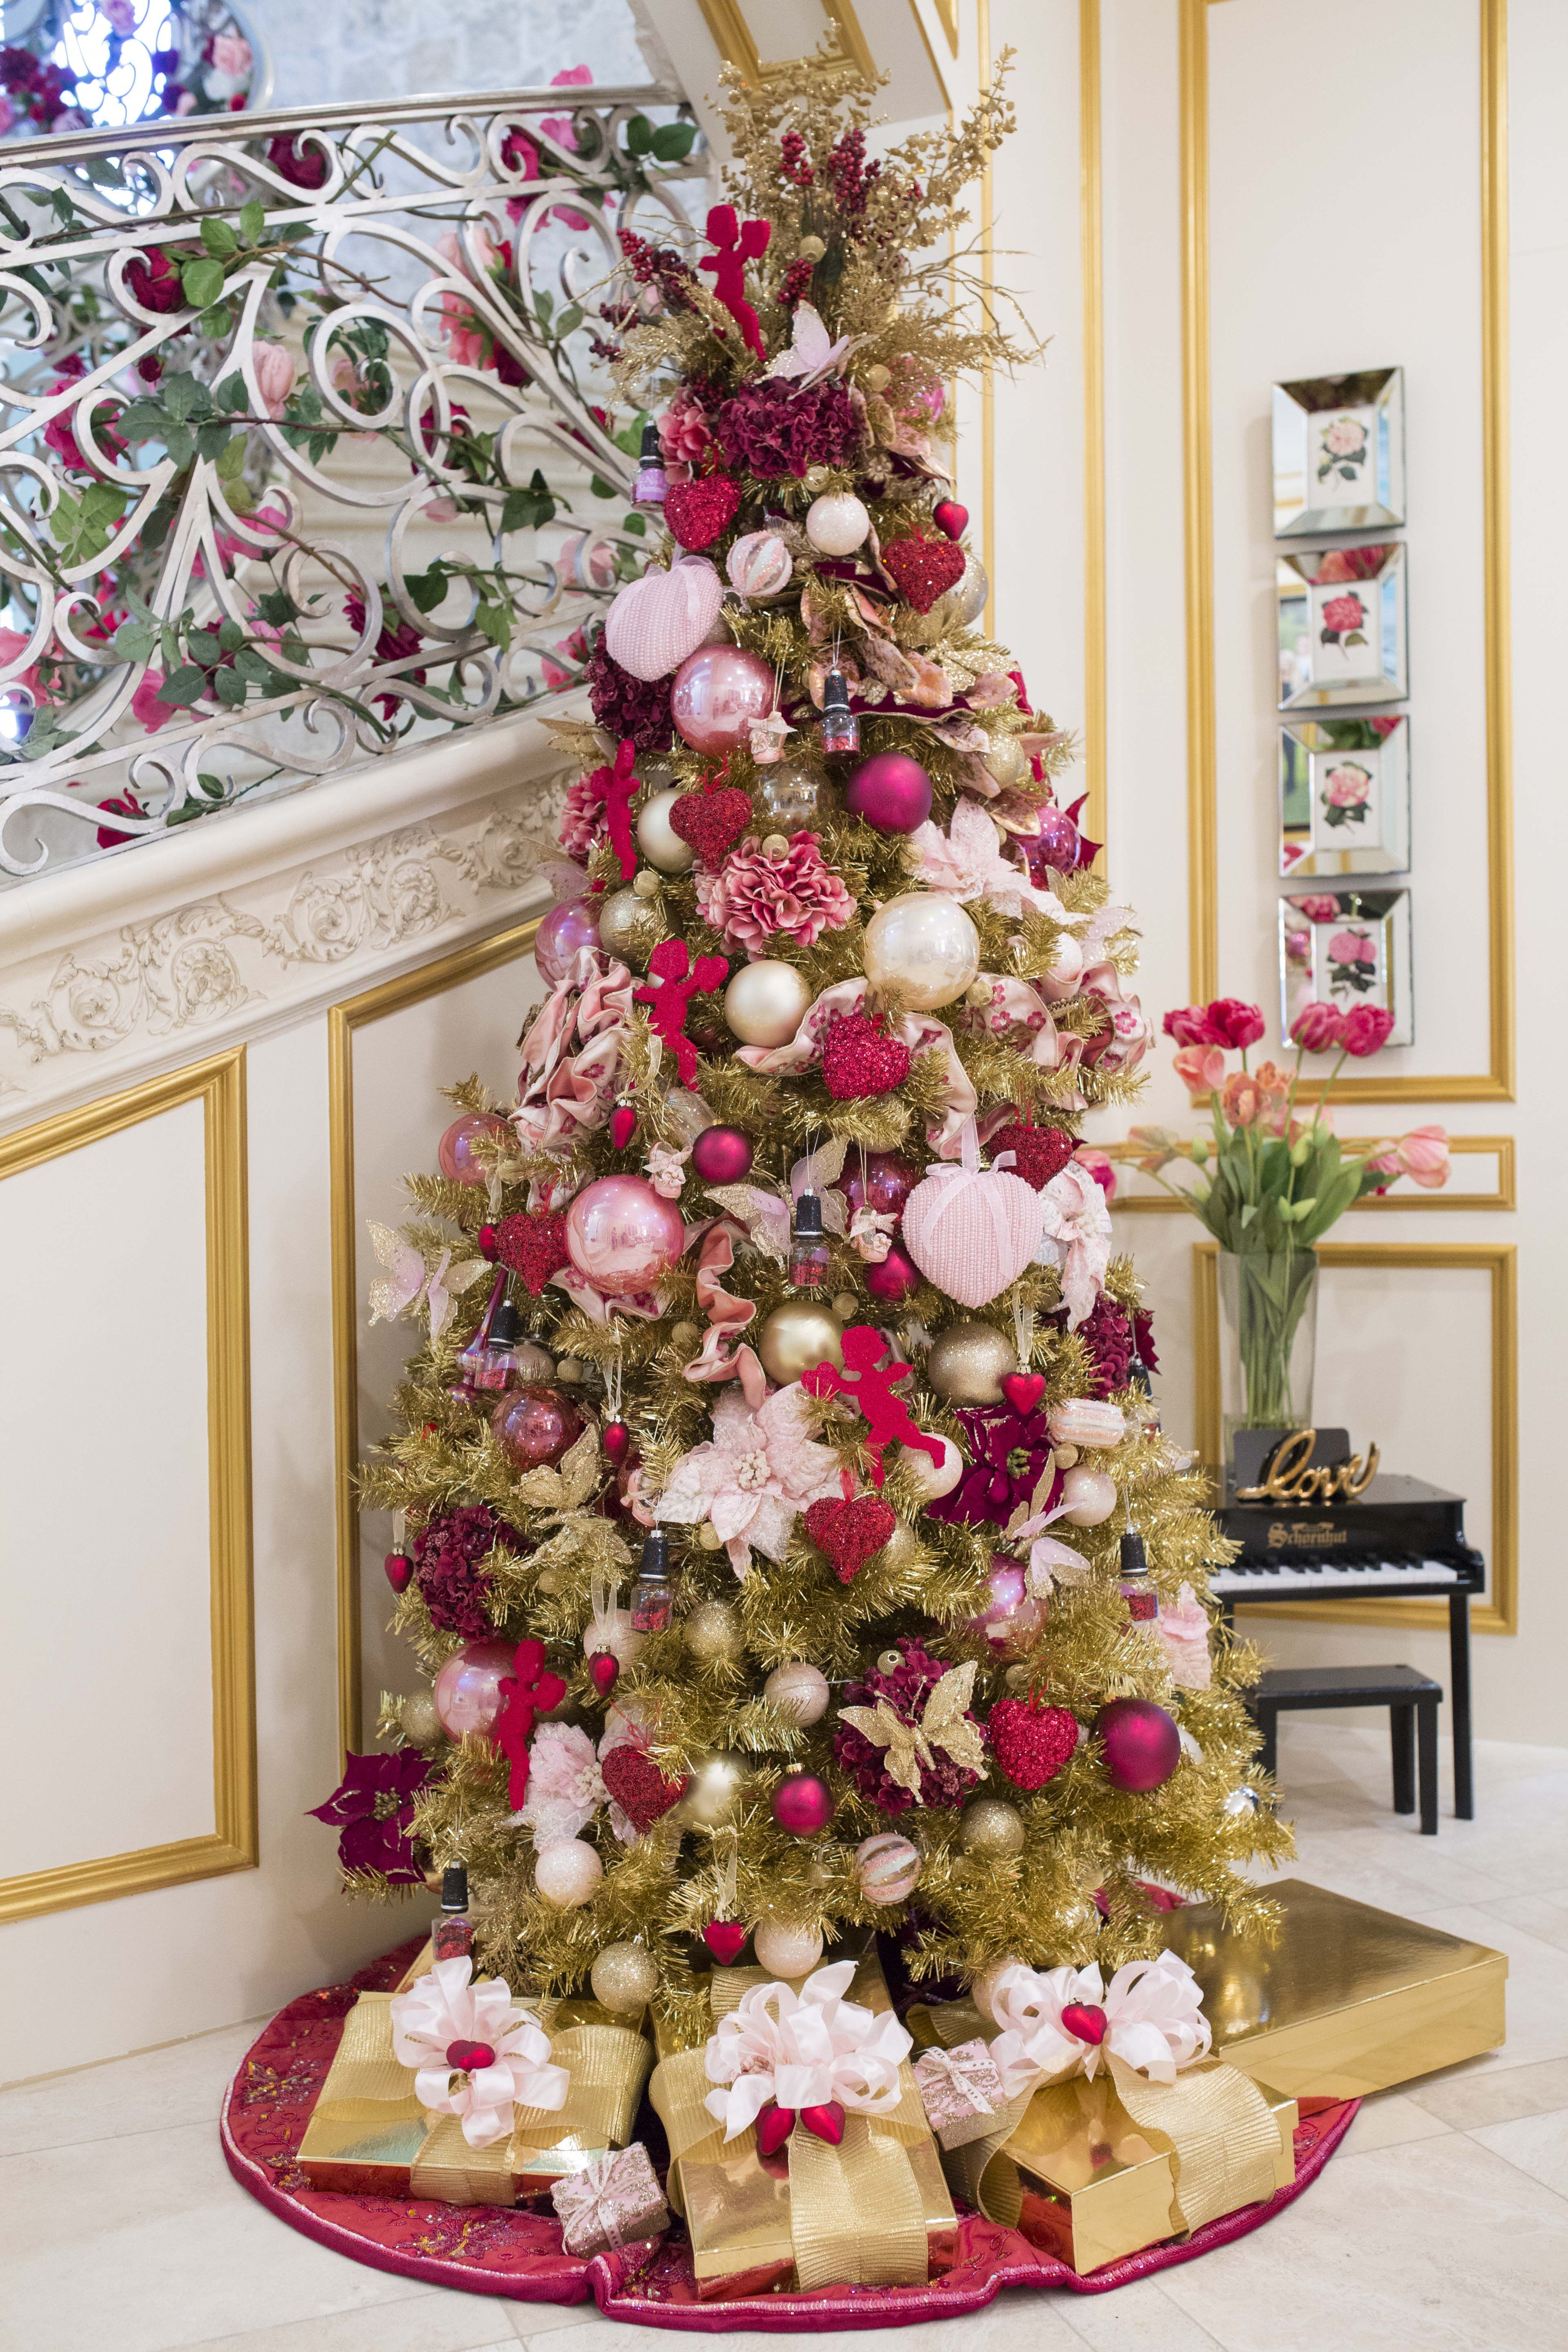 Why Take Down The Christmas Tree When You Can Repurpose It For